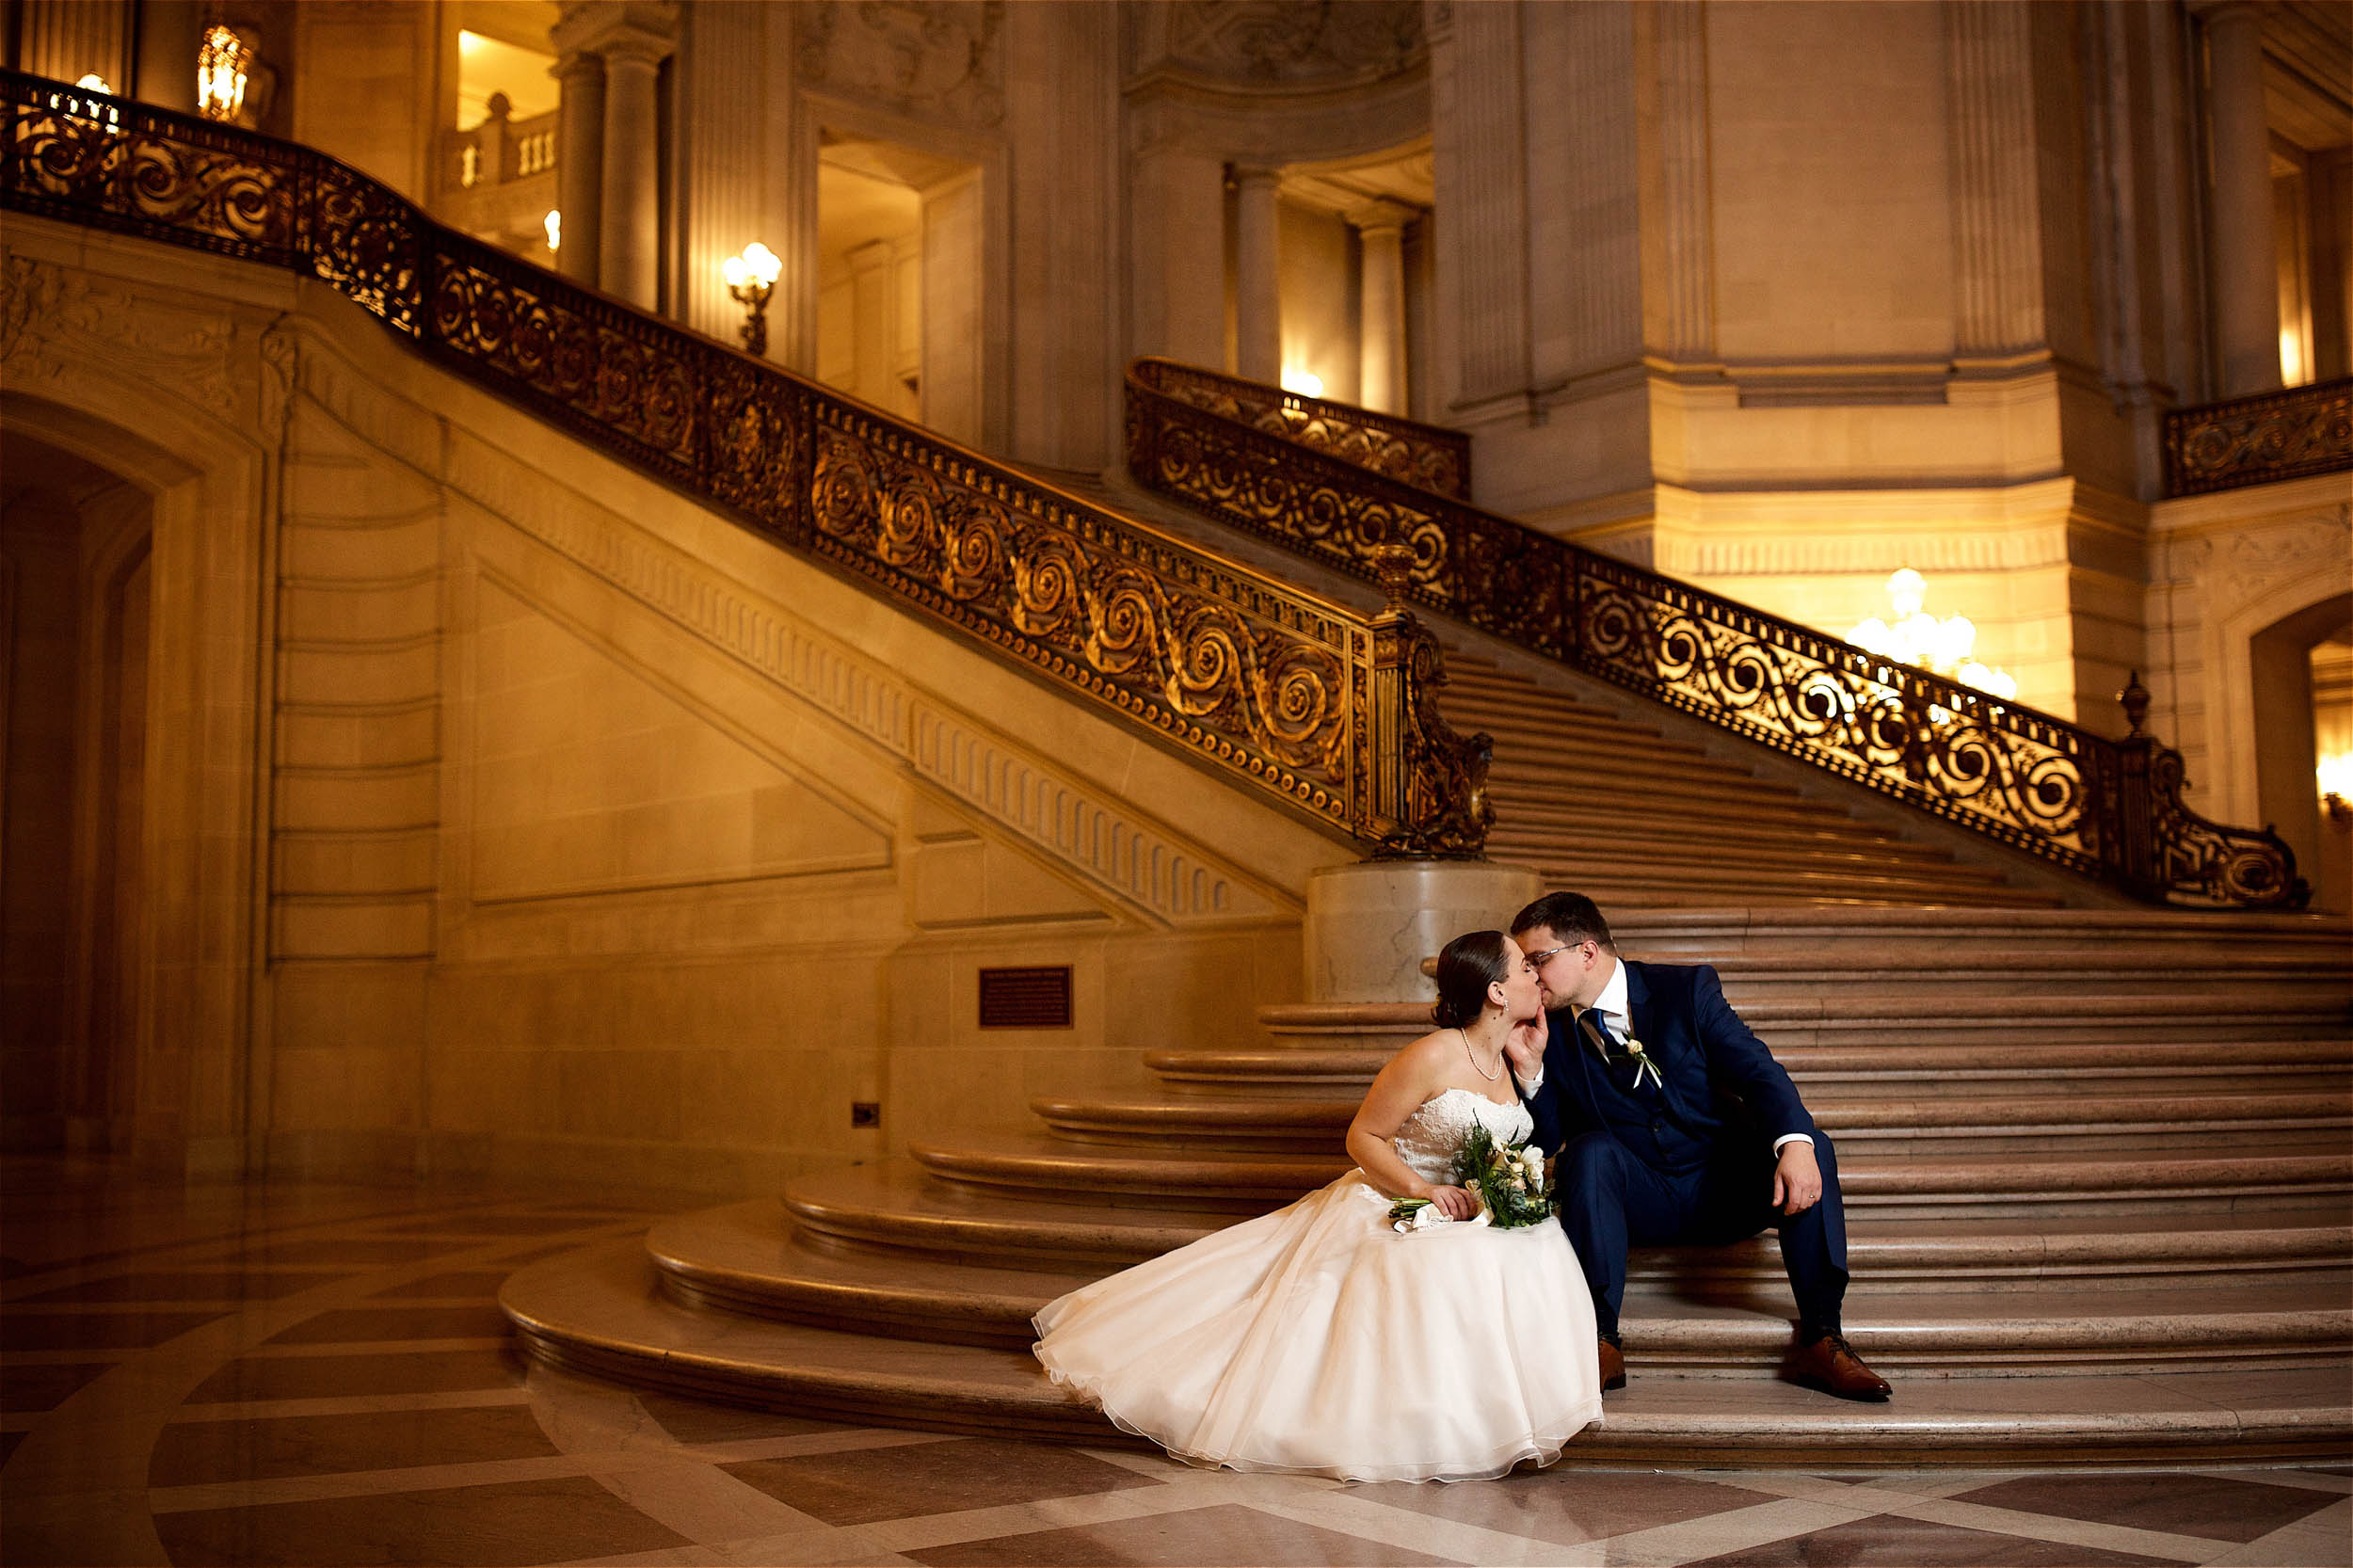 San Francisco City Hall staircase wedding photo